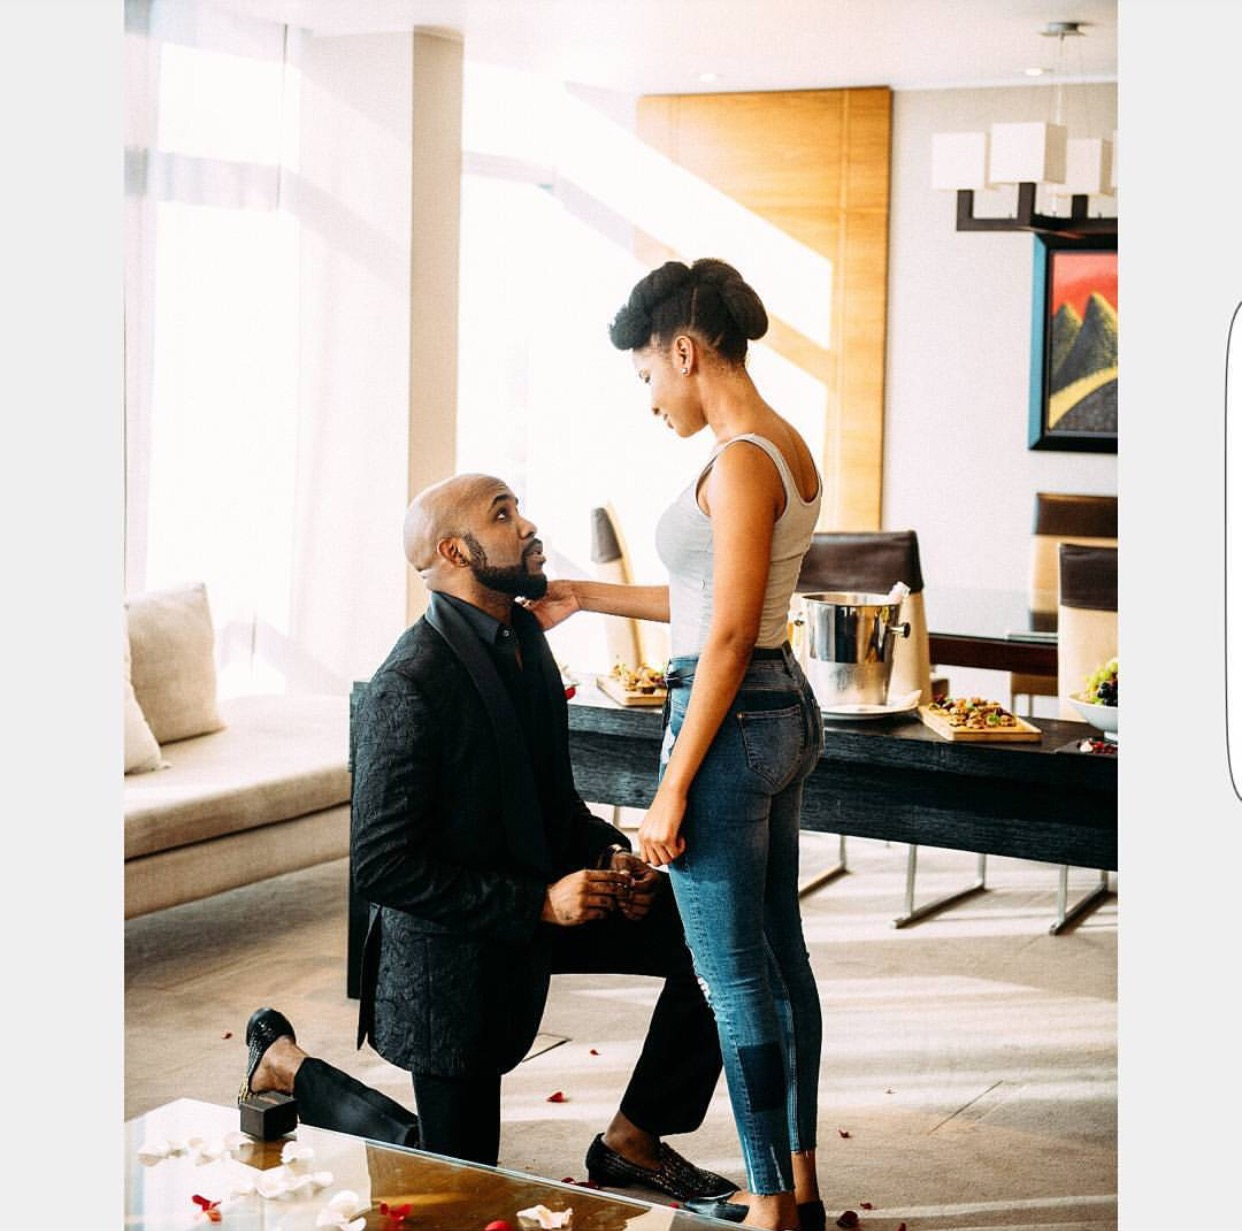 Breaking! Wedding Party Stars AdesuaEtomi And BankyW Are Engaged In Real Life!